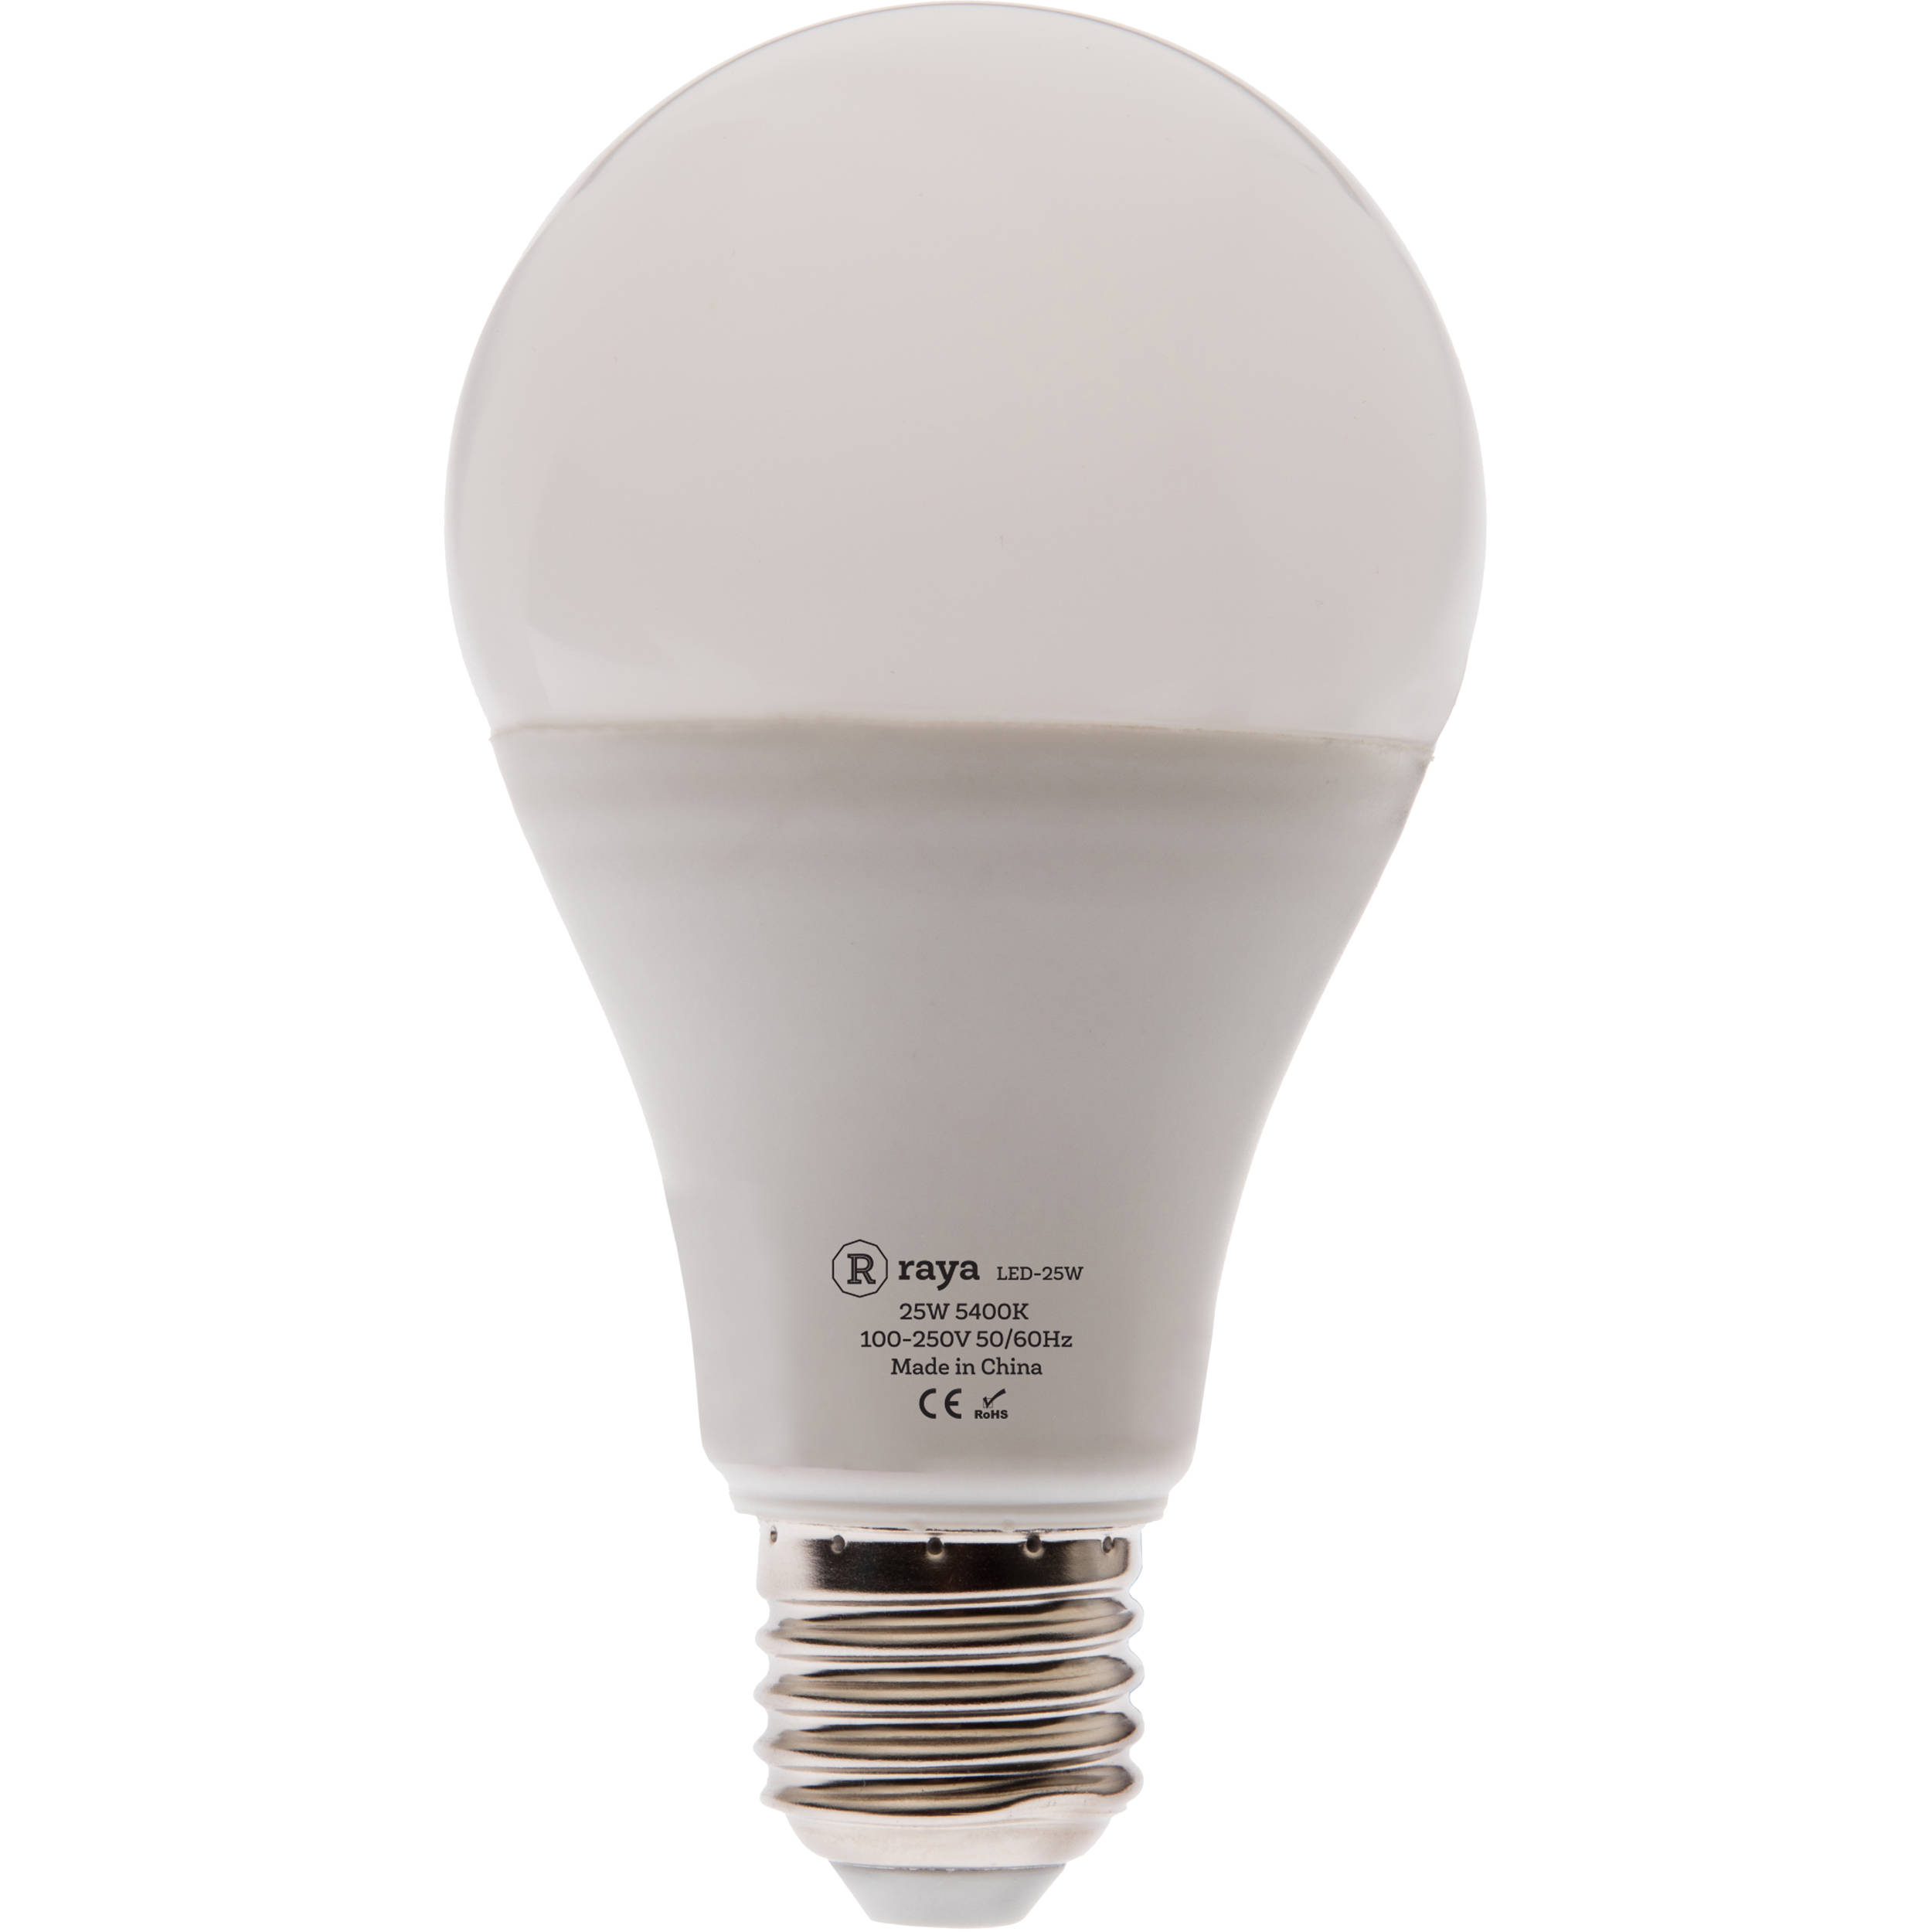 Raya 25w Led Daylight Bulb